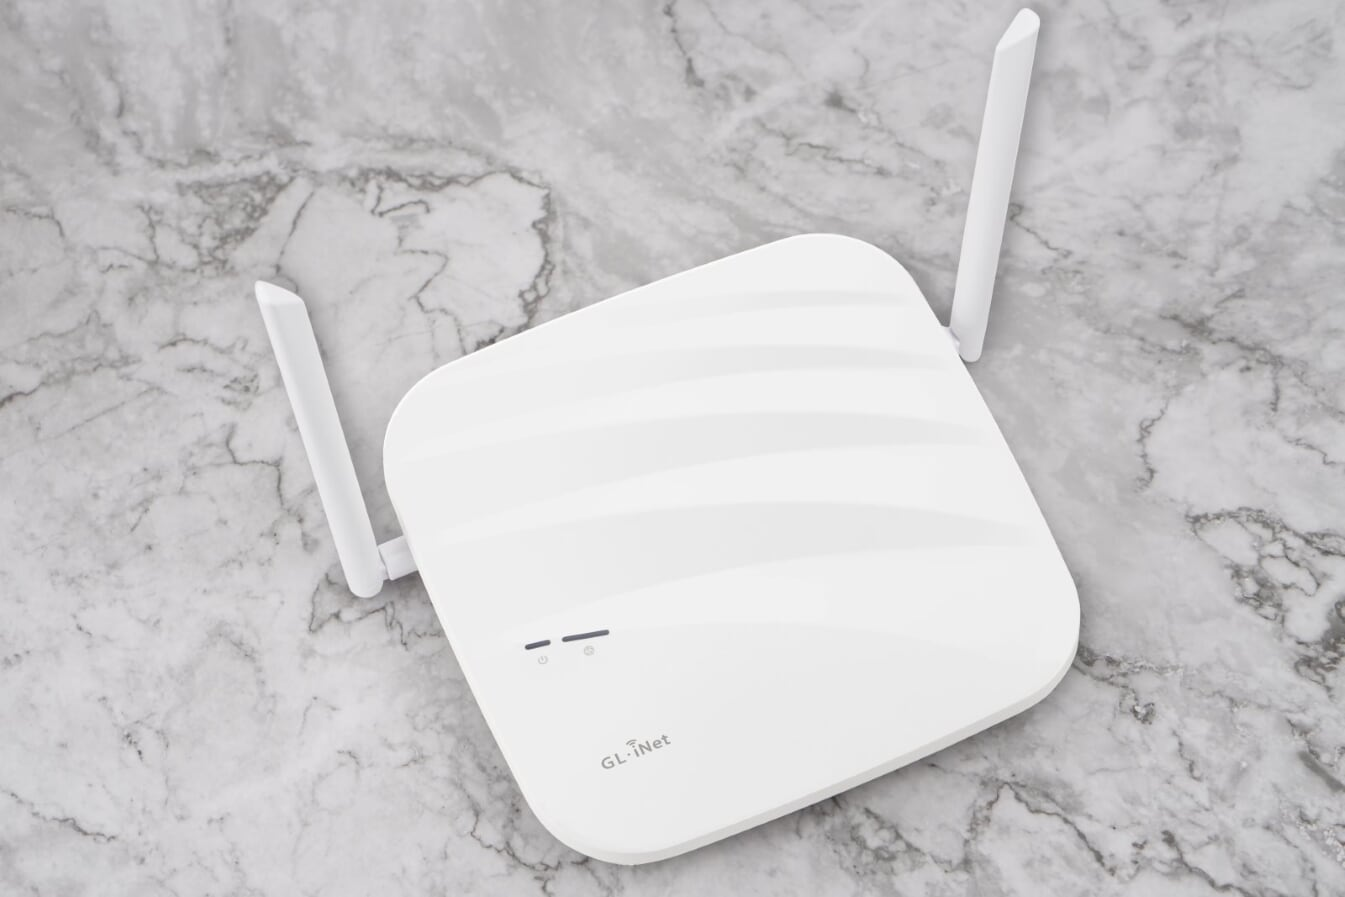 A business-level ceiling wireless access point